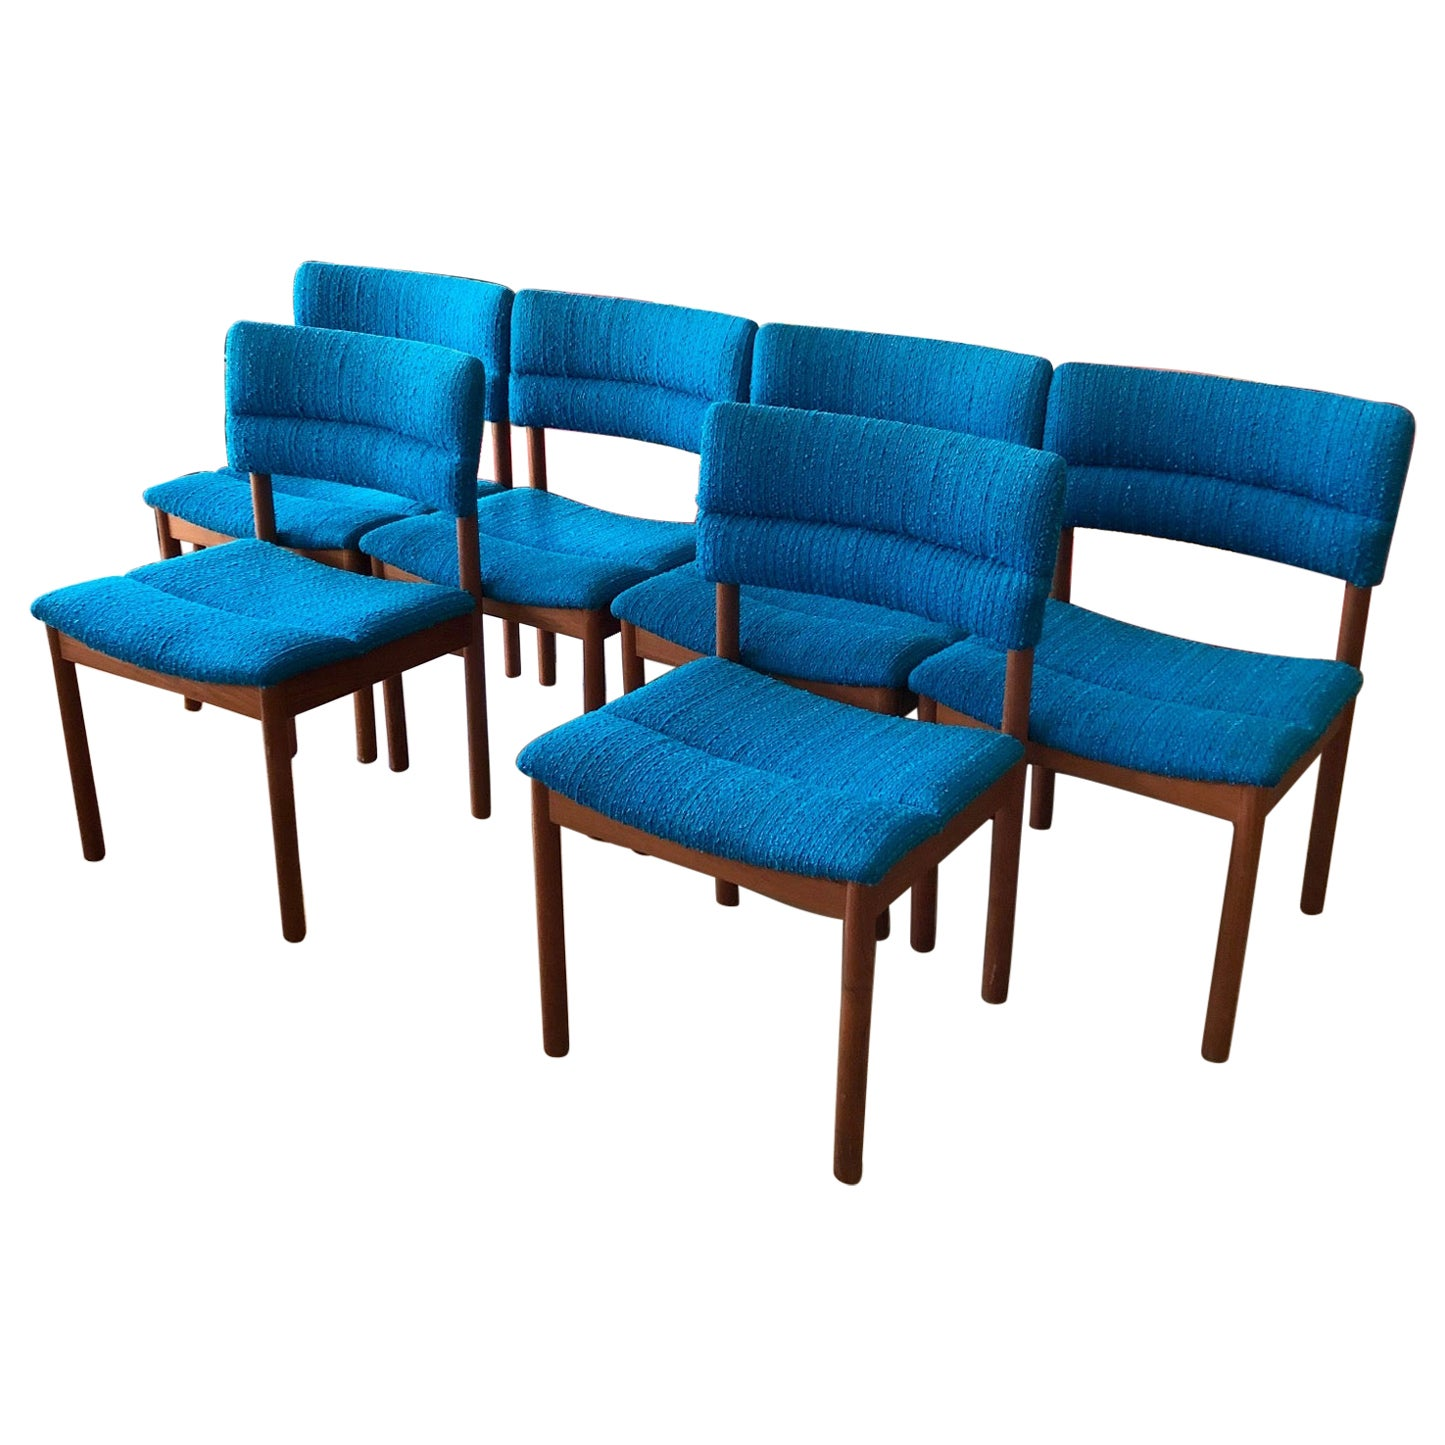 Vintage 1960s Danish Modern Set of Six Teak Dining Chairs